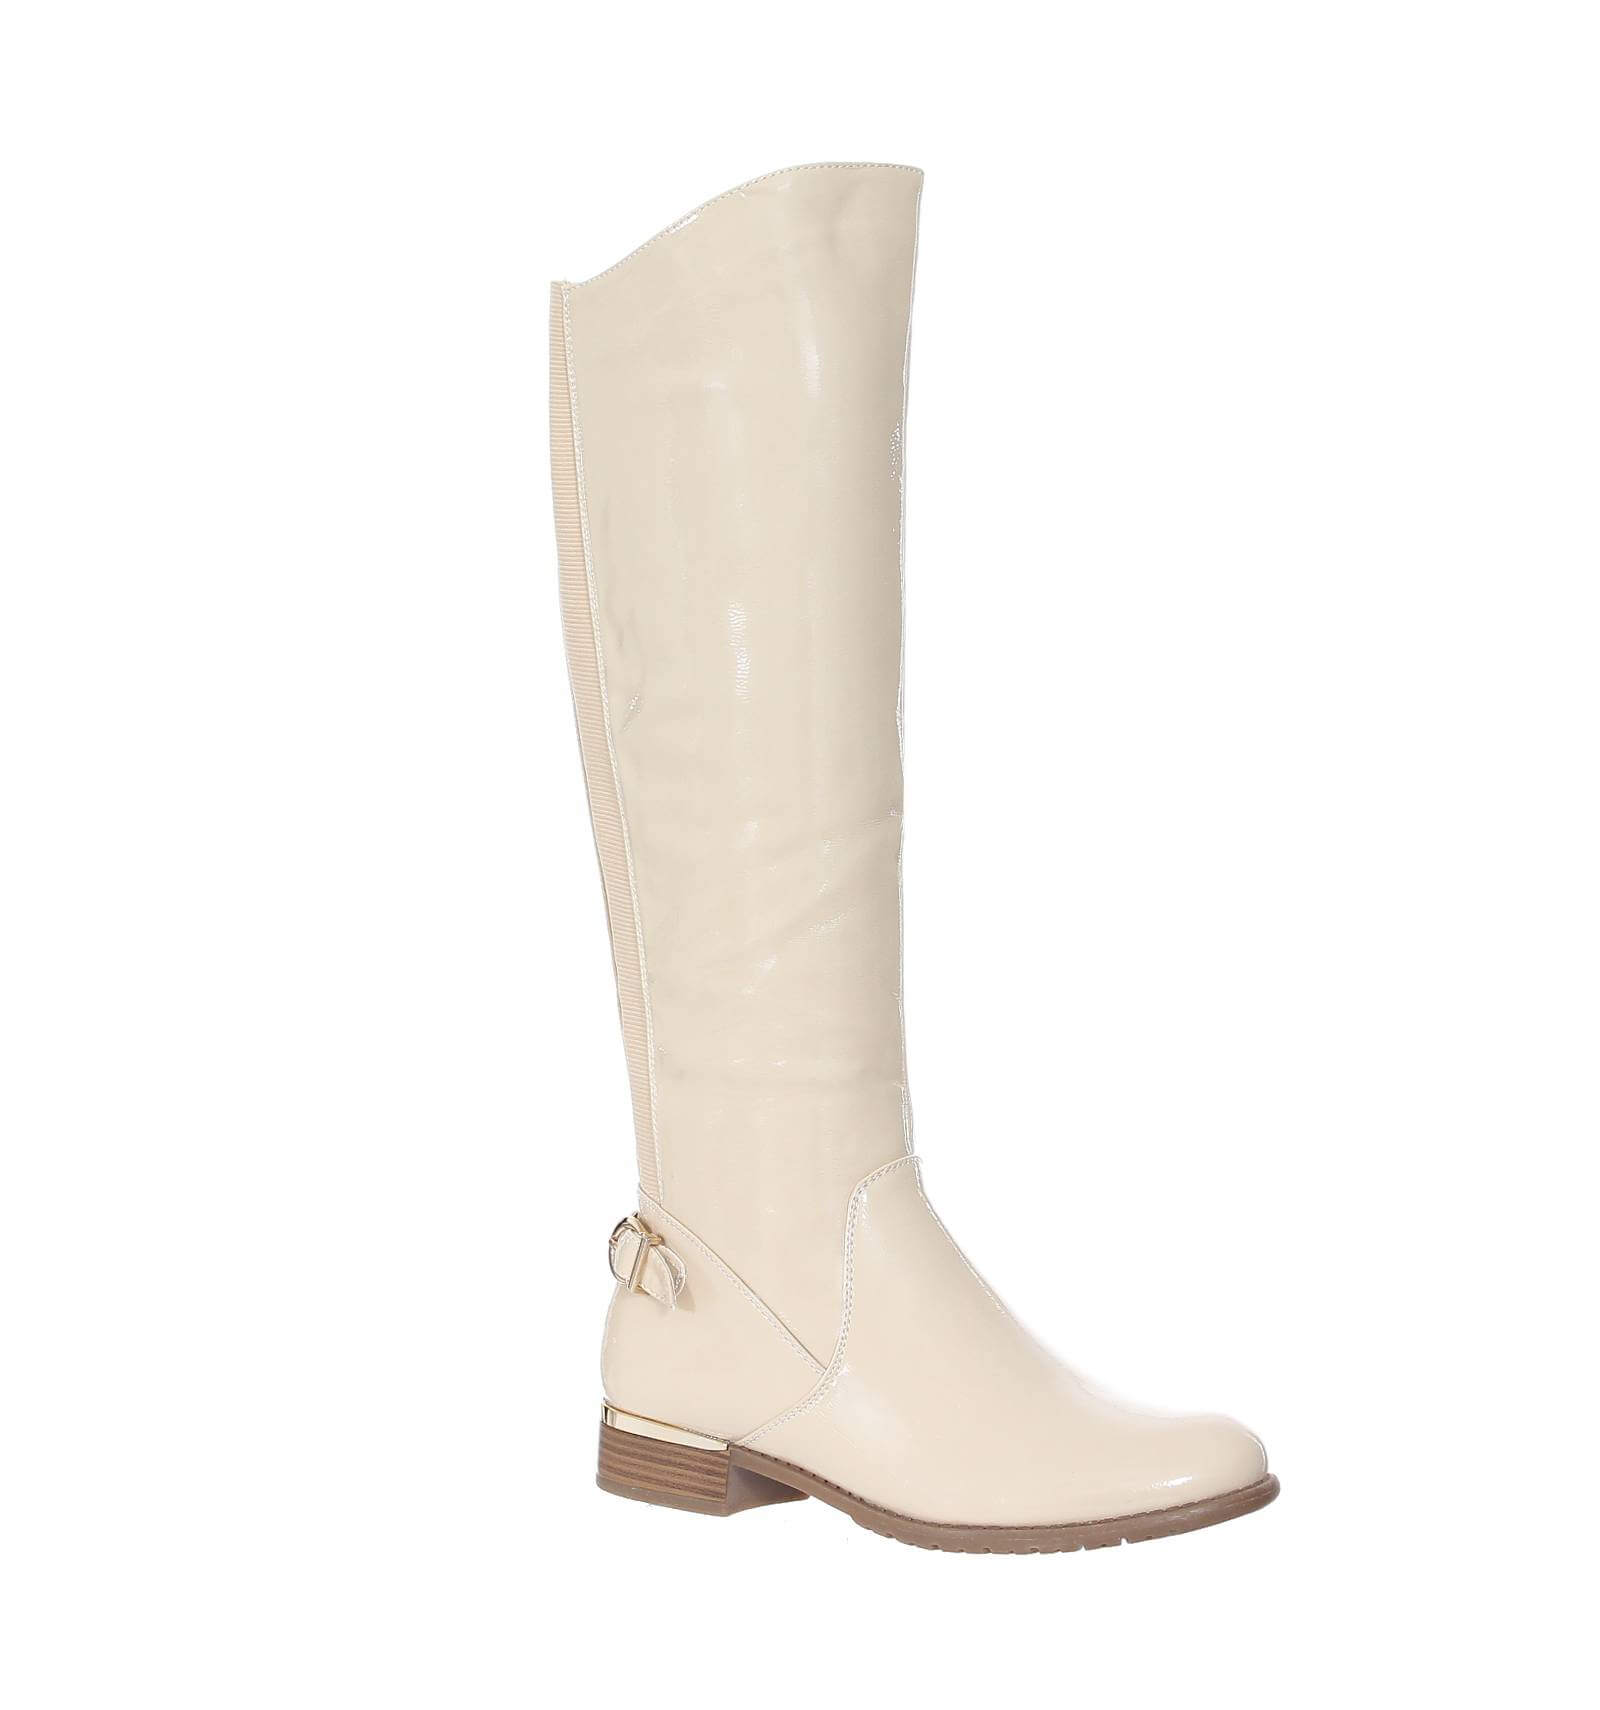 bottes femme cuire beige